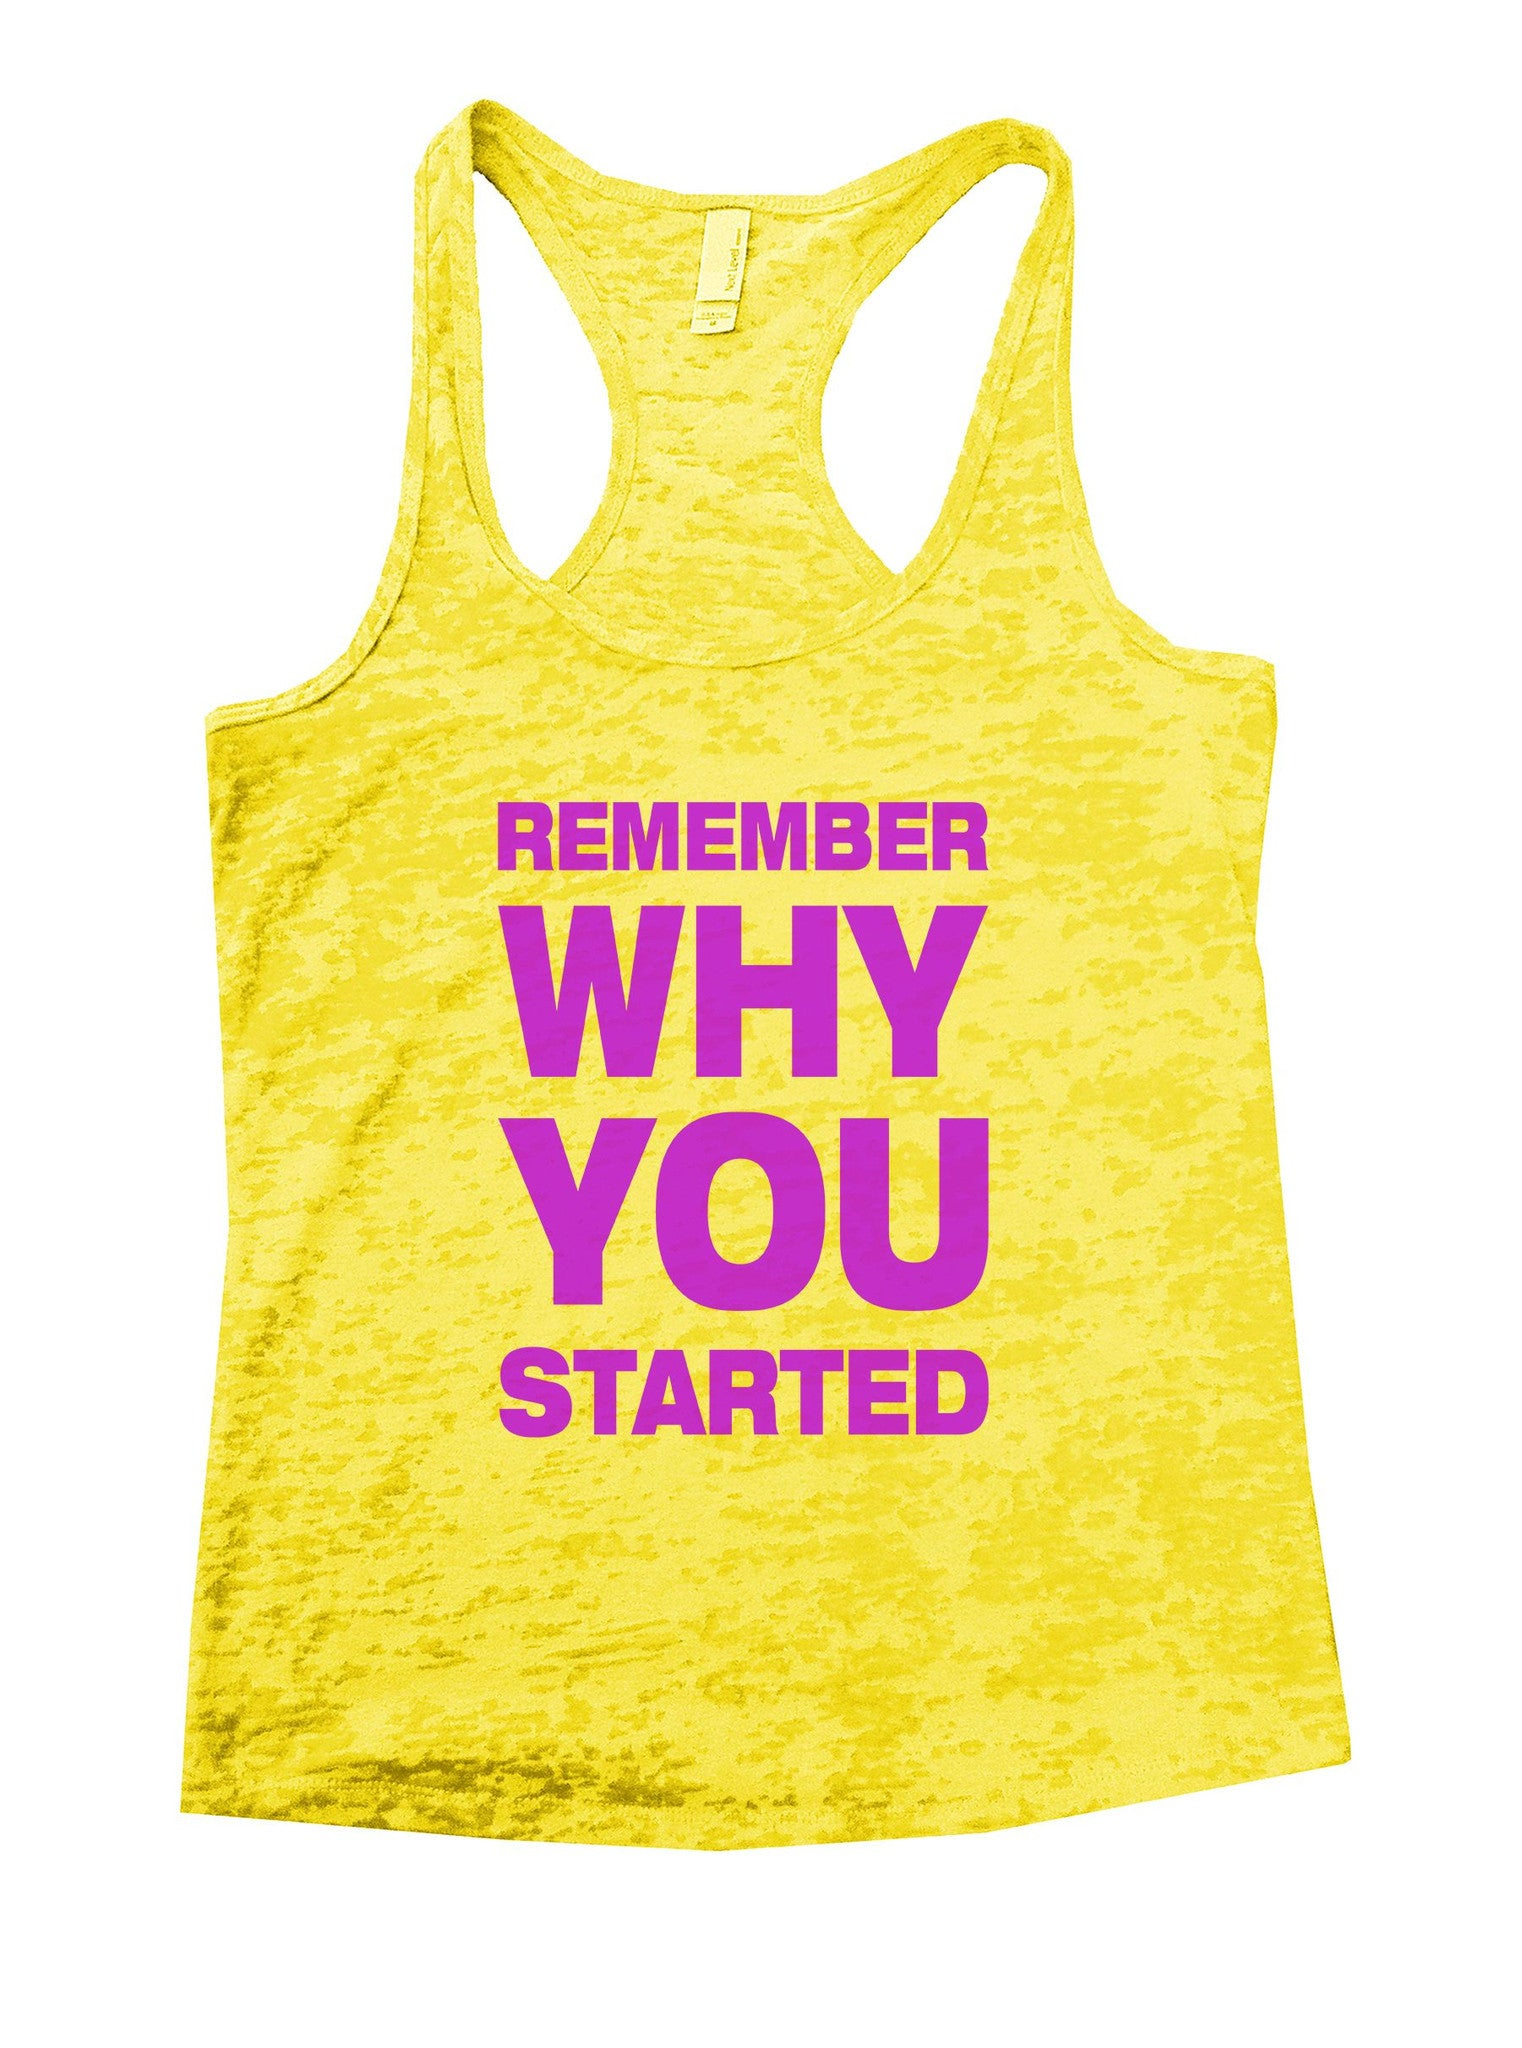 Remember Why You Started Burnout Tank Top By BurnoutTankTops.com - 852 - Funny Shirts Tank Tops Burnouts and Triblends  - 7